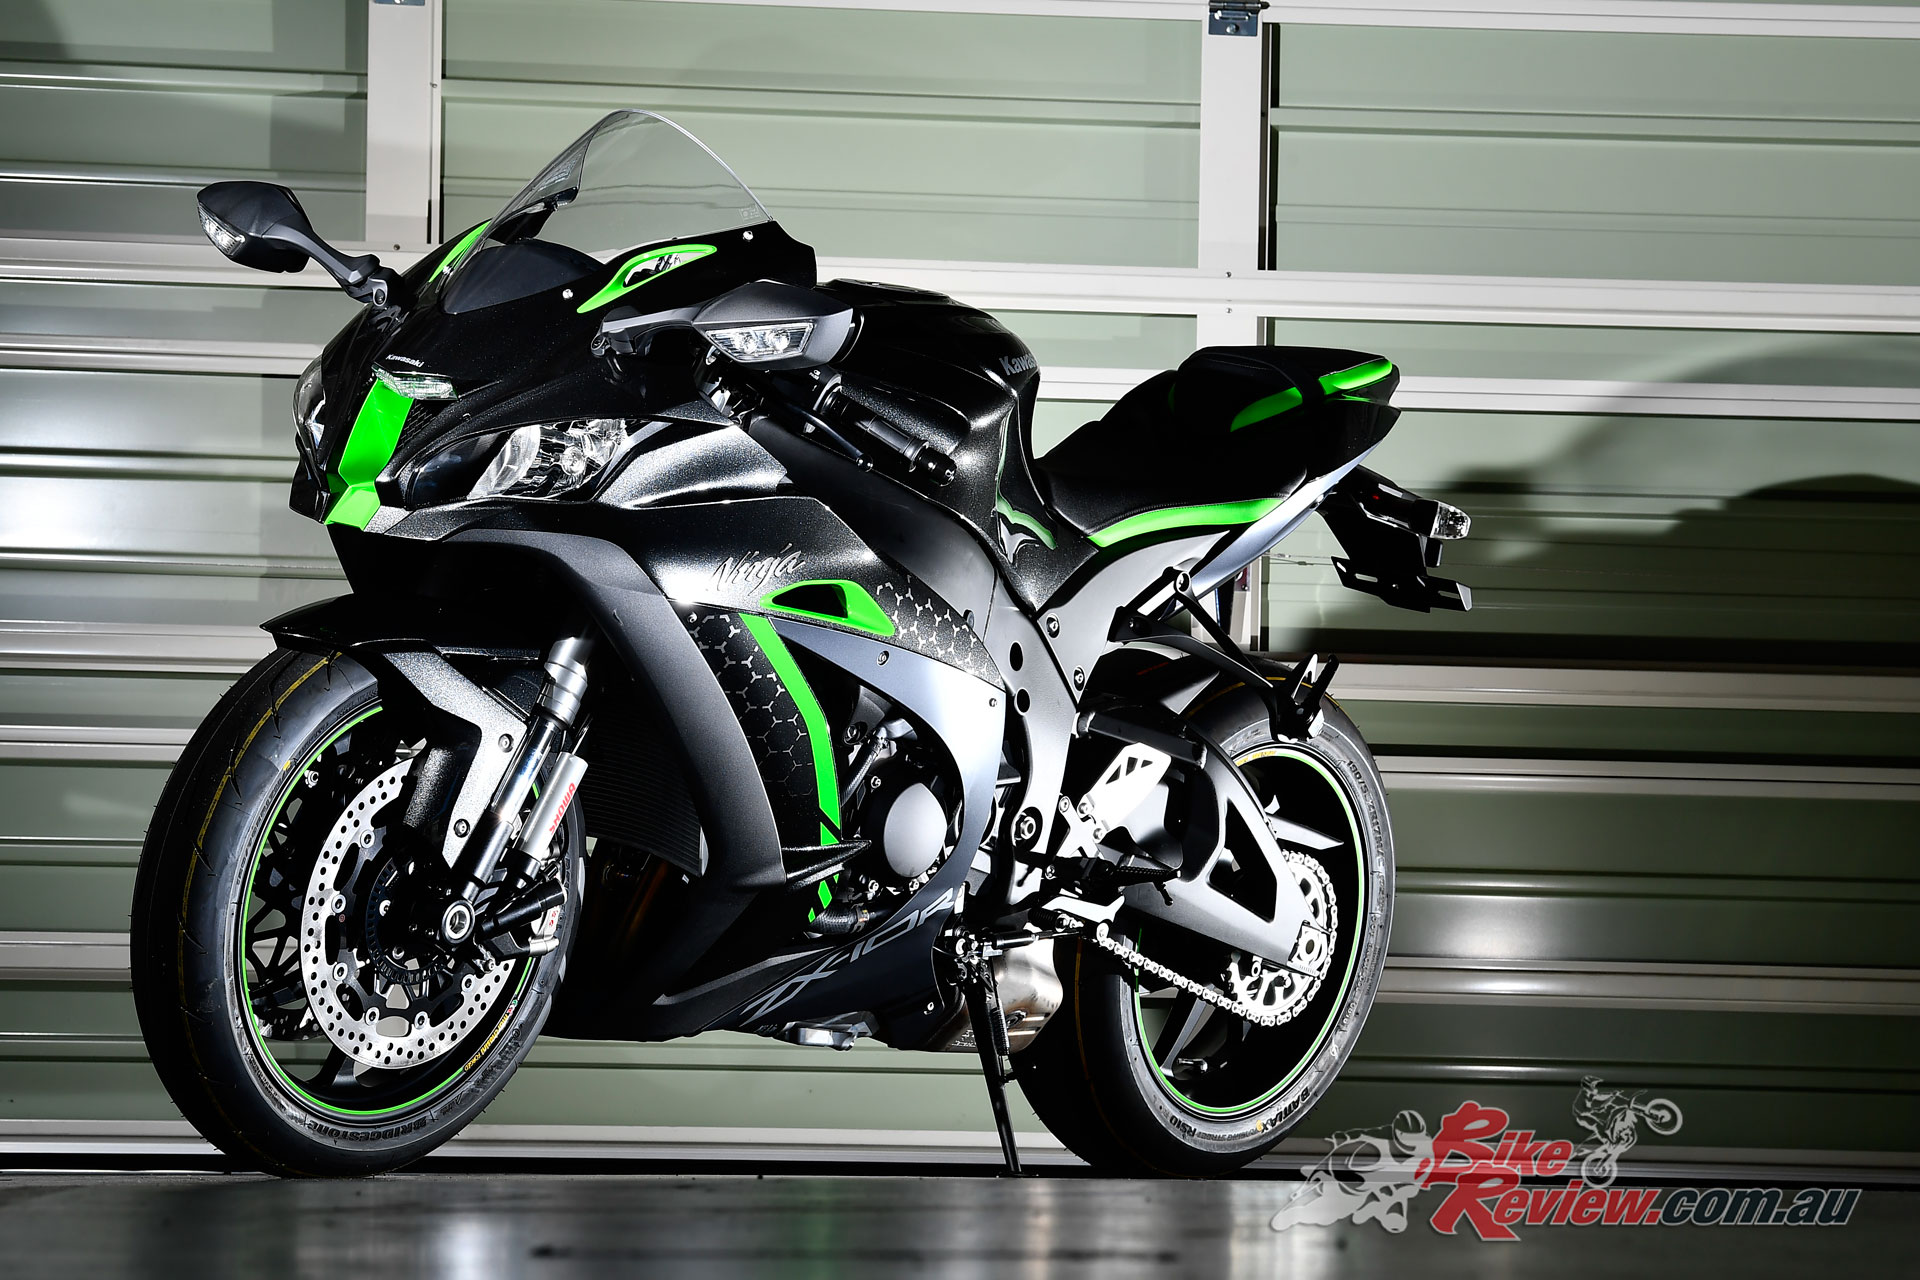 Model Update 2019 Kawasaki Ninja Zx 10r Zx 10rr Zx 10r Se Bike